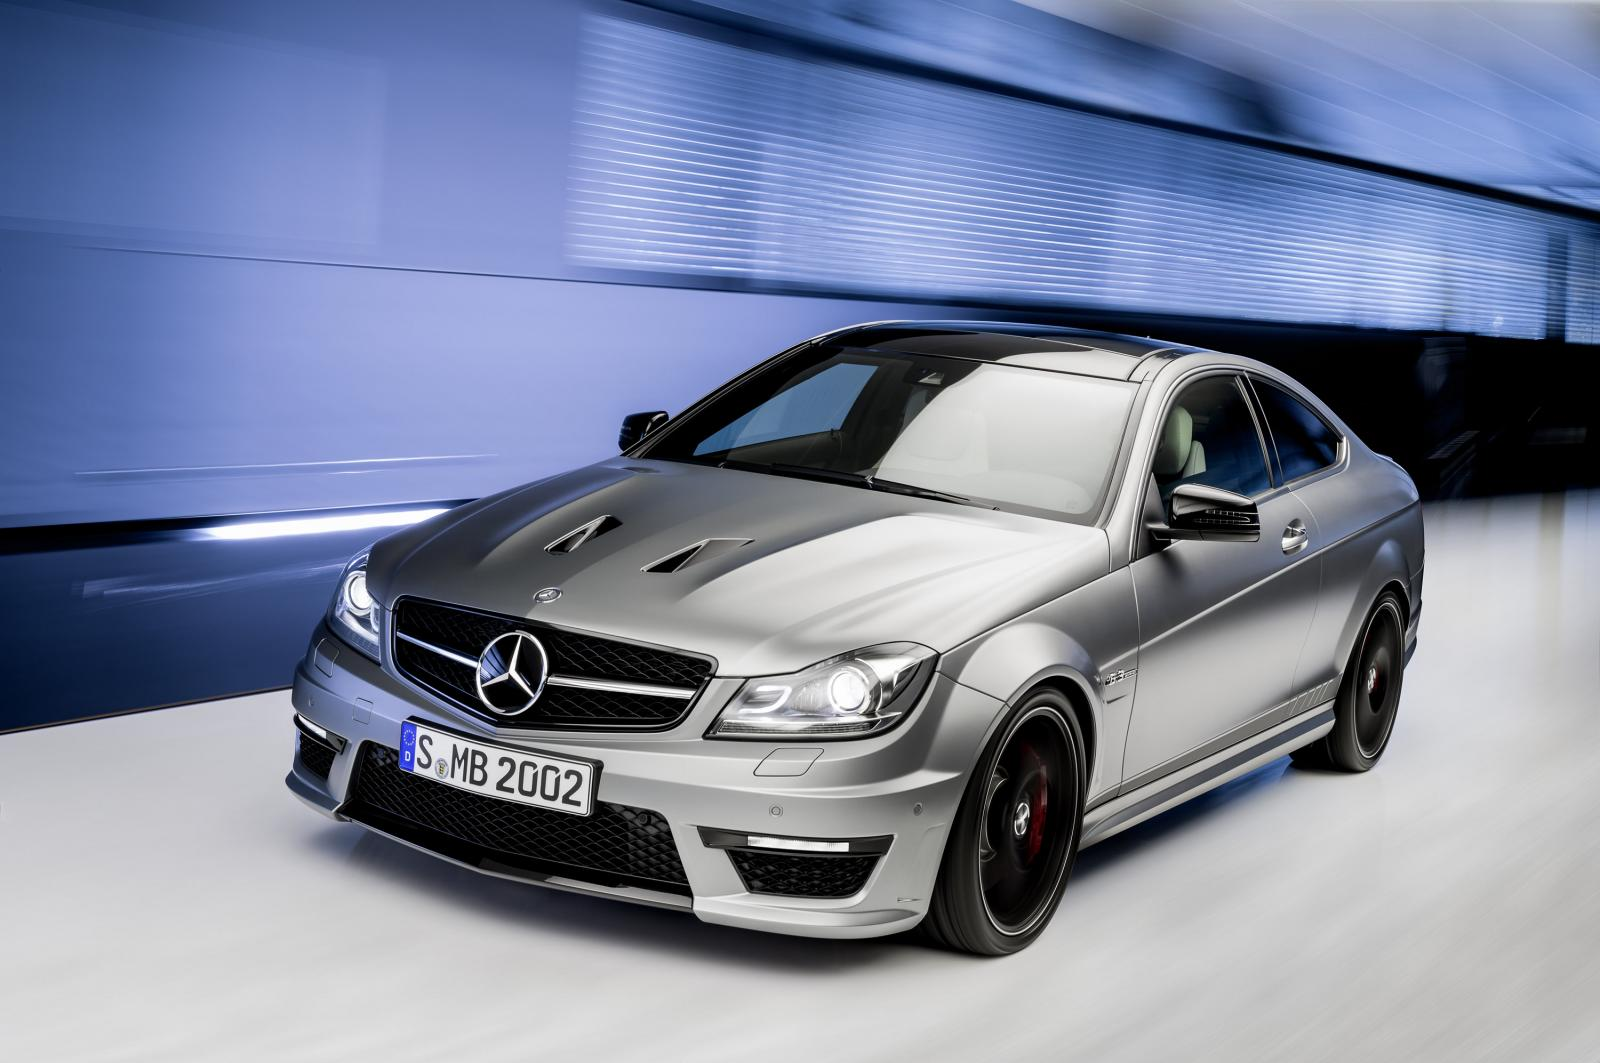 2014 mercedes benz c63 amg edition 507 released video for Mercedes benz glk amg